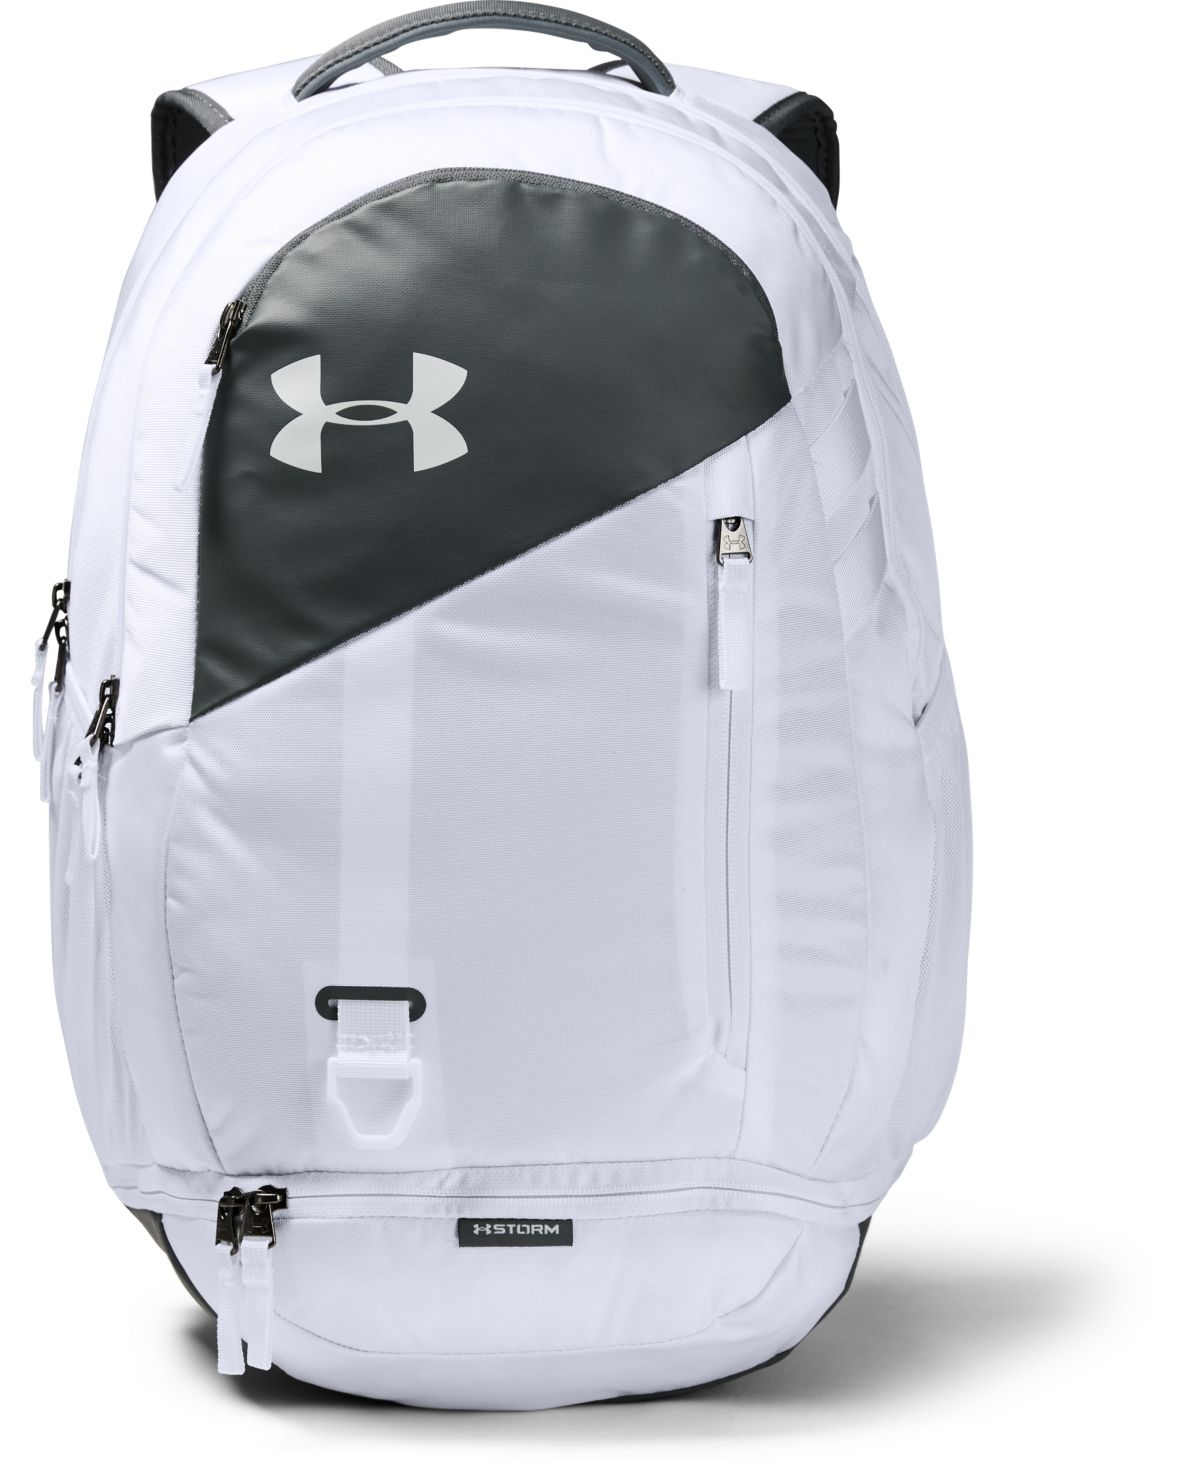 Under Armour Hustle 4.0 Backpack & Reviews - All ...